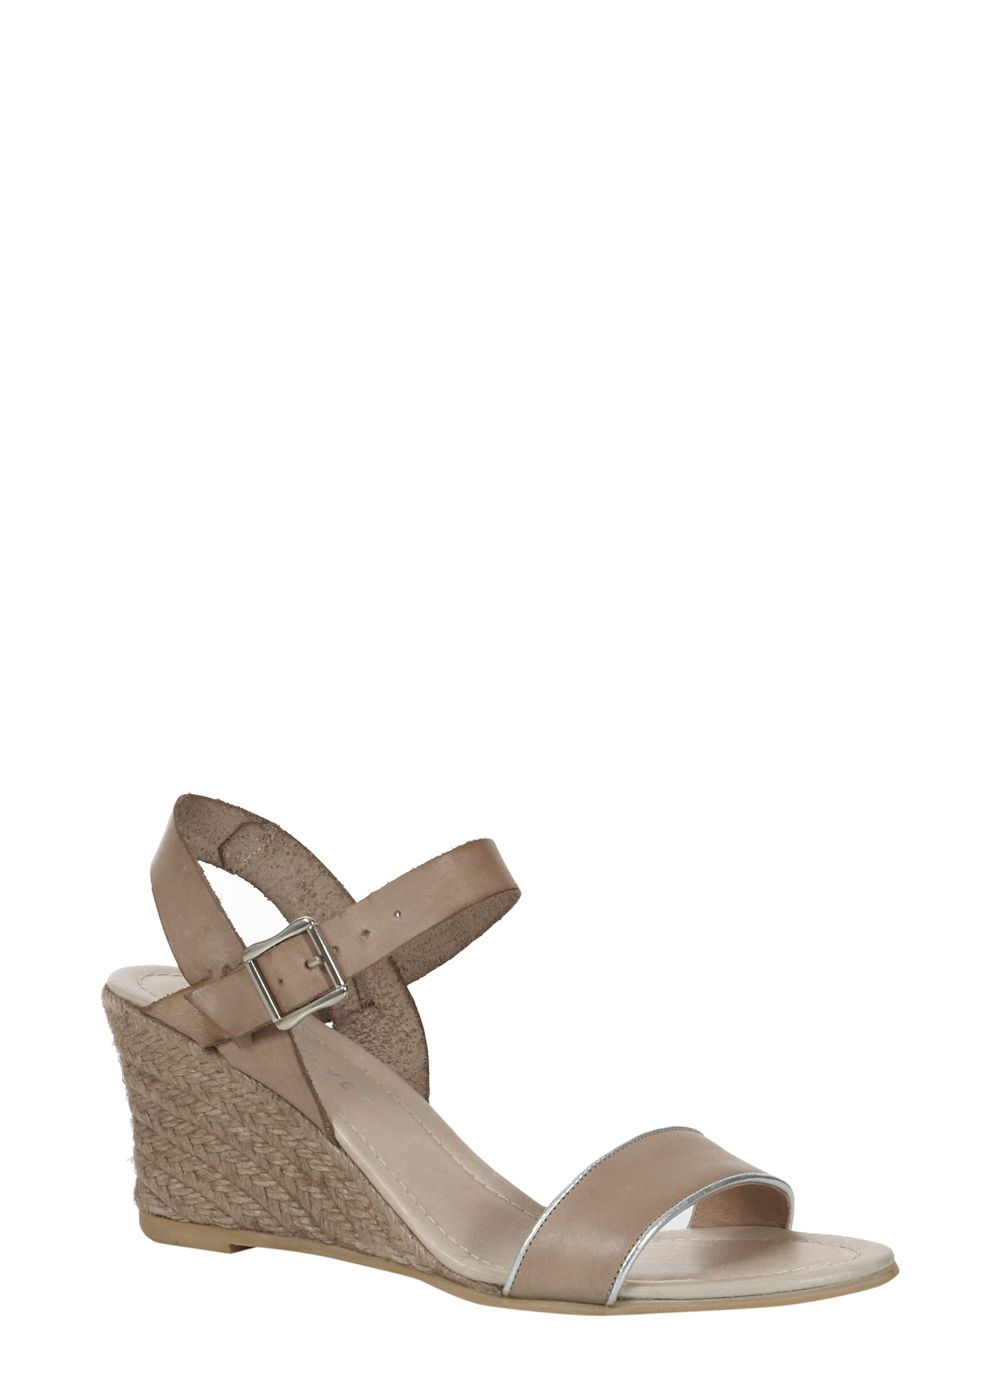 Lizzie low wedge